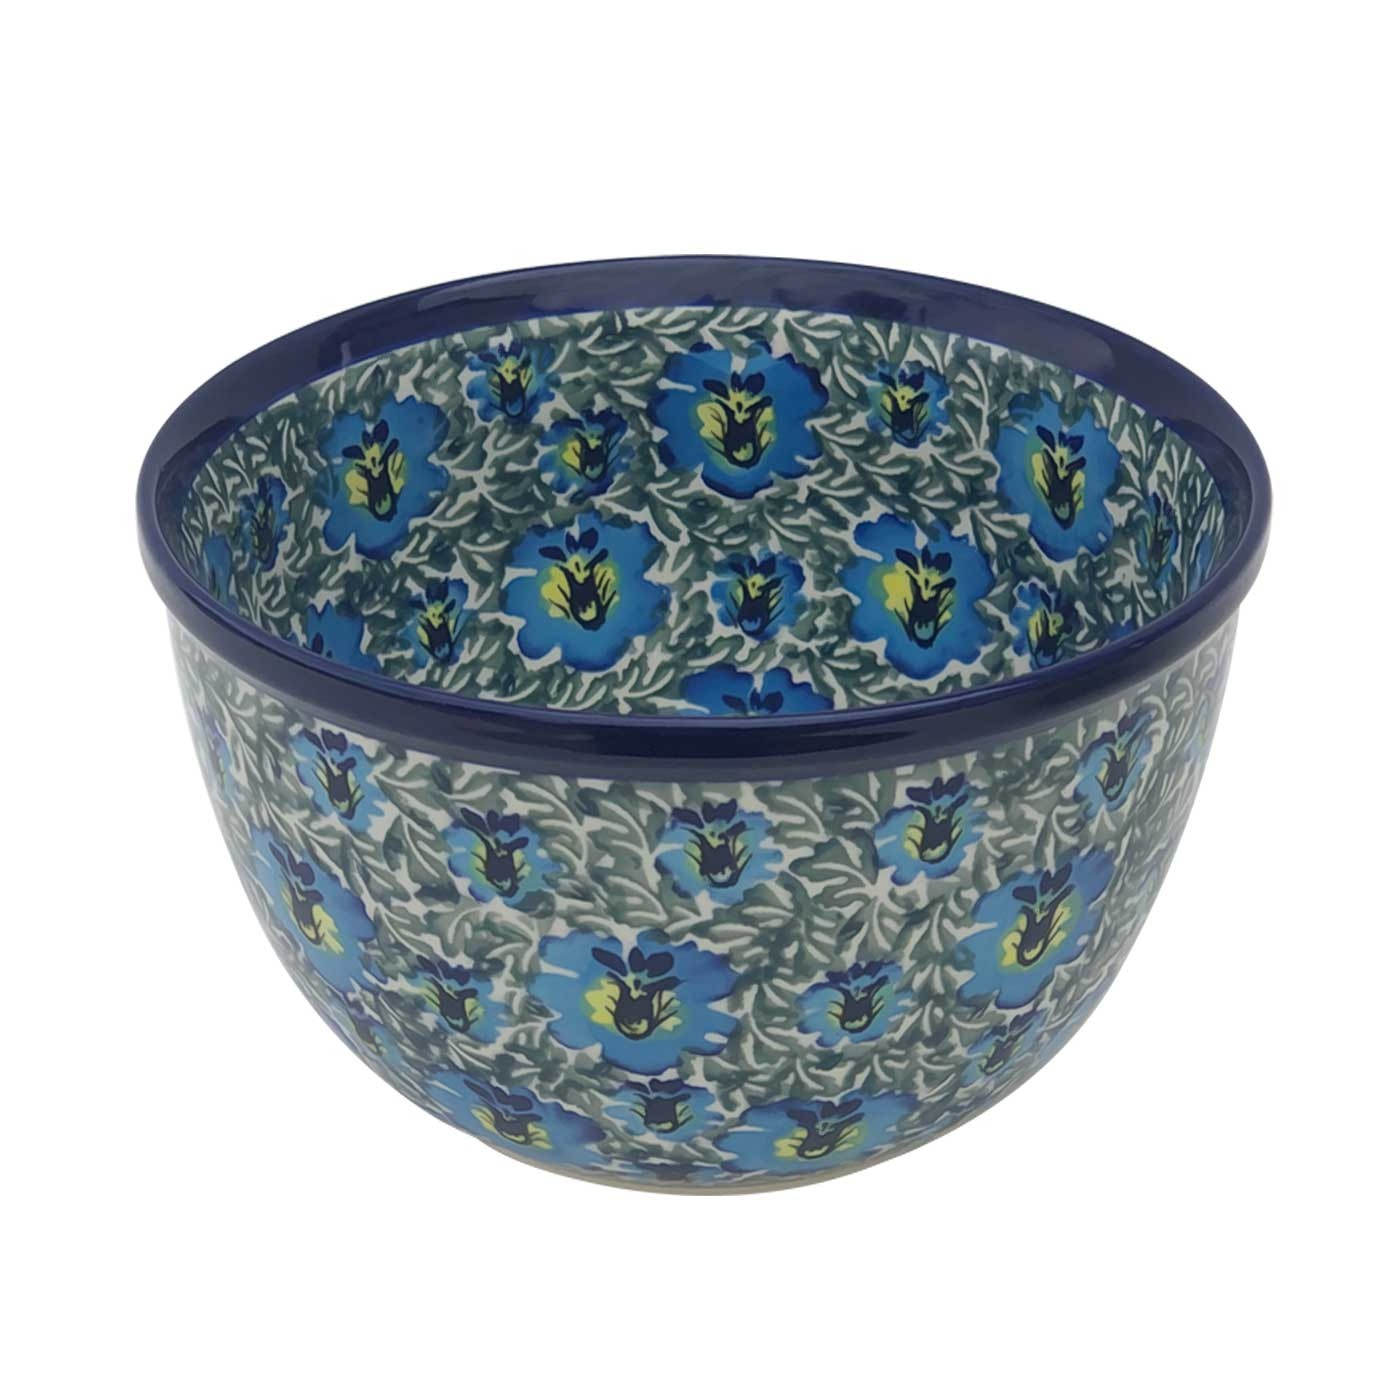 Pottery Avenue 9-Cup Stoneware Mixing Bowl -985-313AR Blue Lagoon